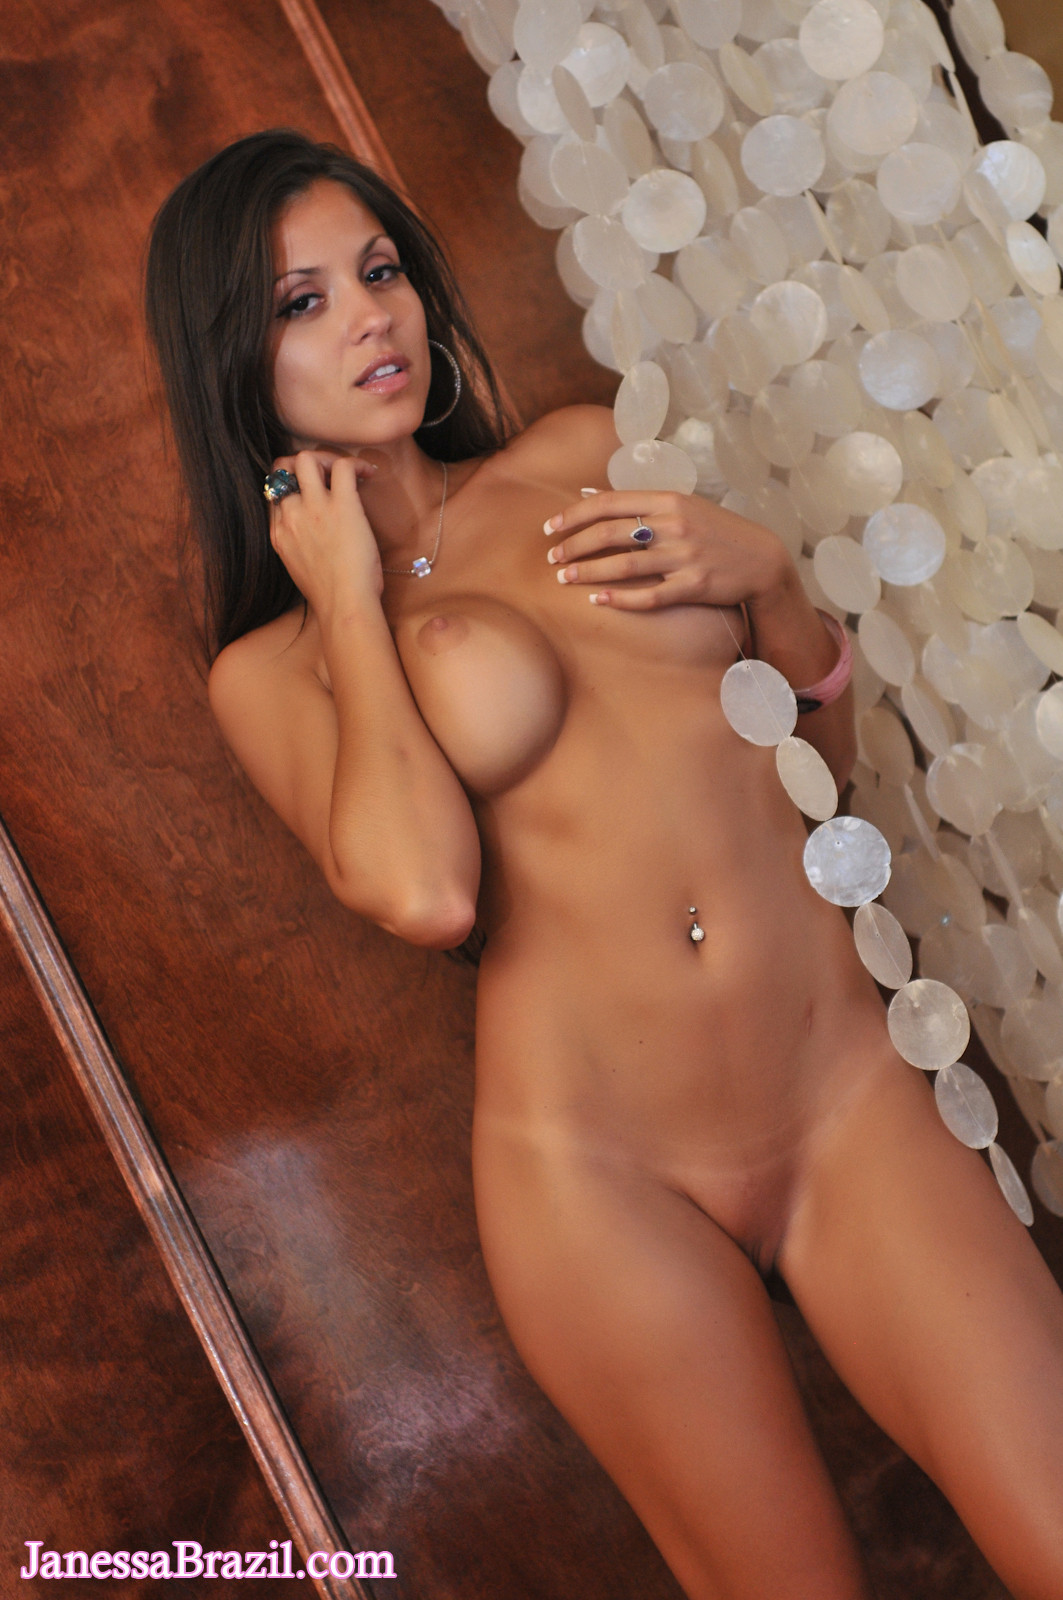 Janessa Brazil - Hot College Girl Getting Naked At The Bar 34034-1667